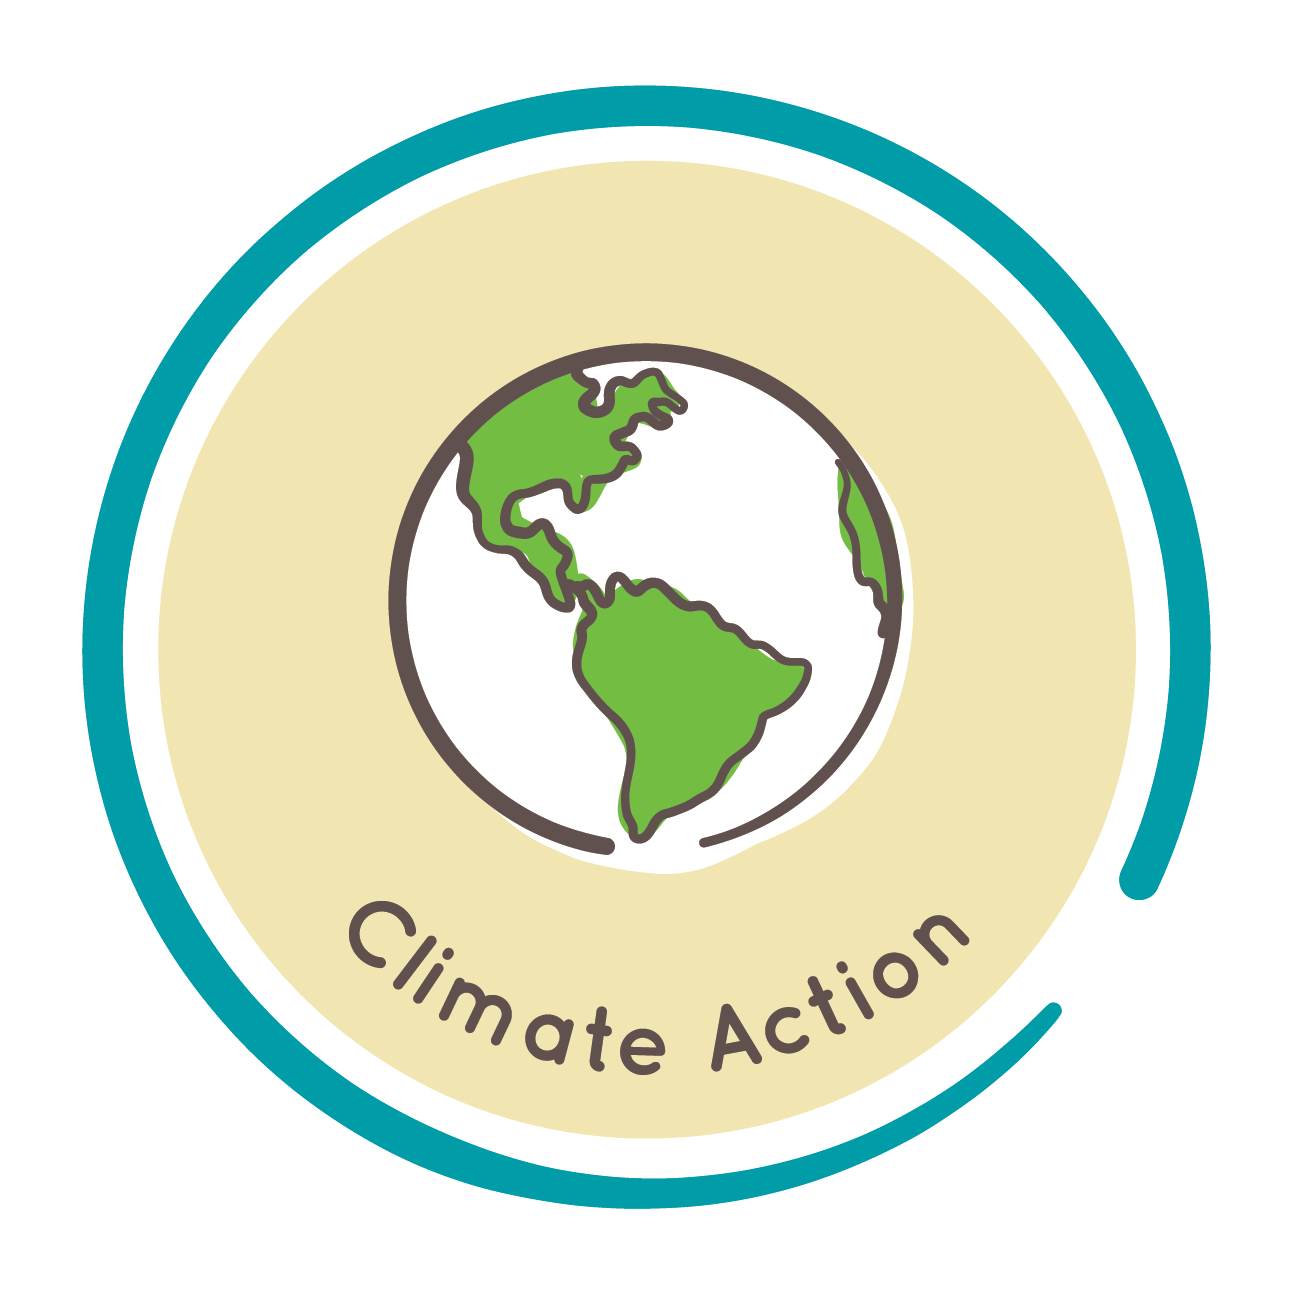 badge_climate_action.png